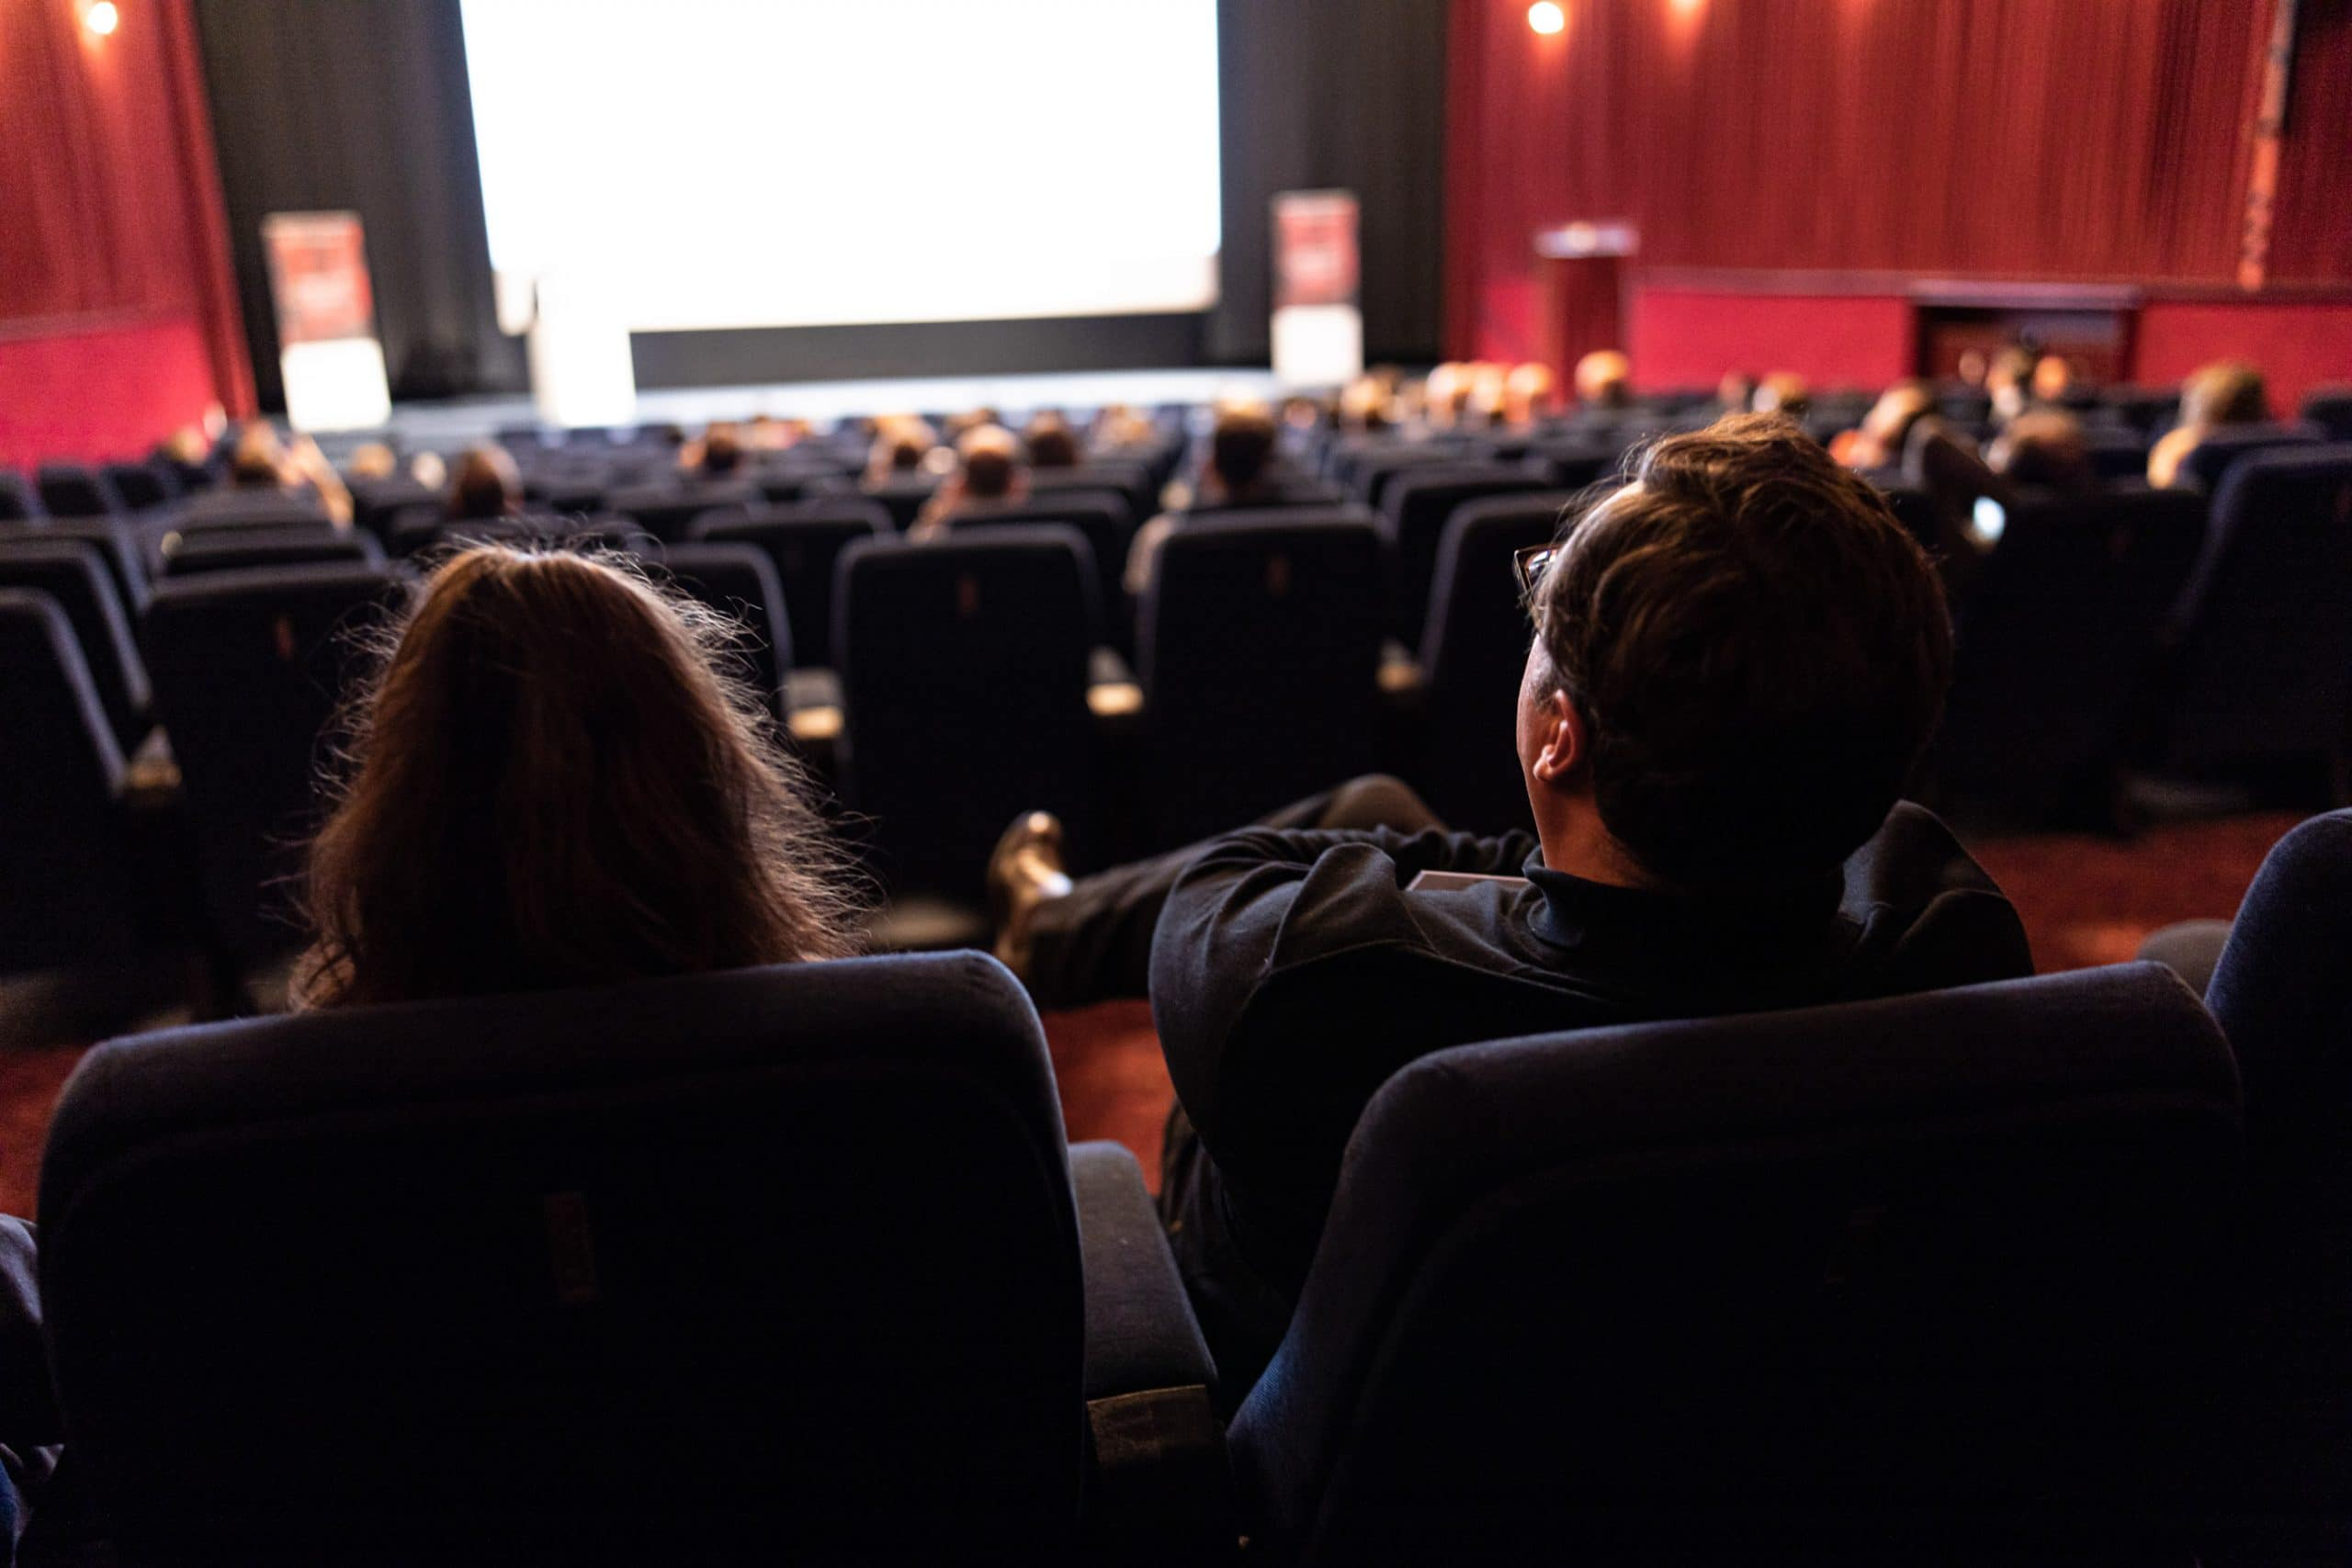 Tableau Cinema Tour | Delphi Kino, Berlin – 13.11.2019